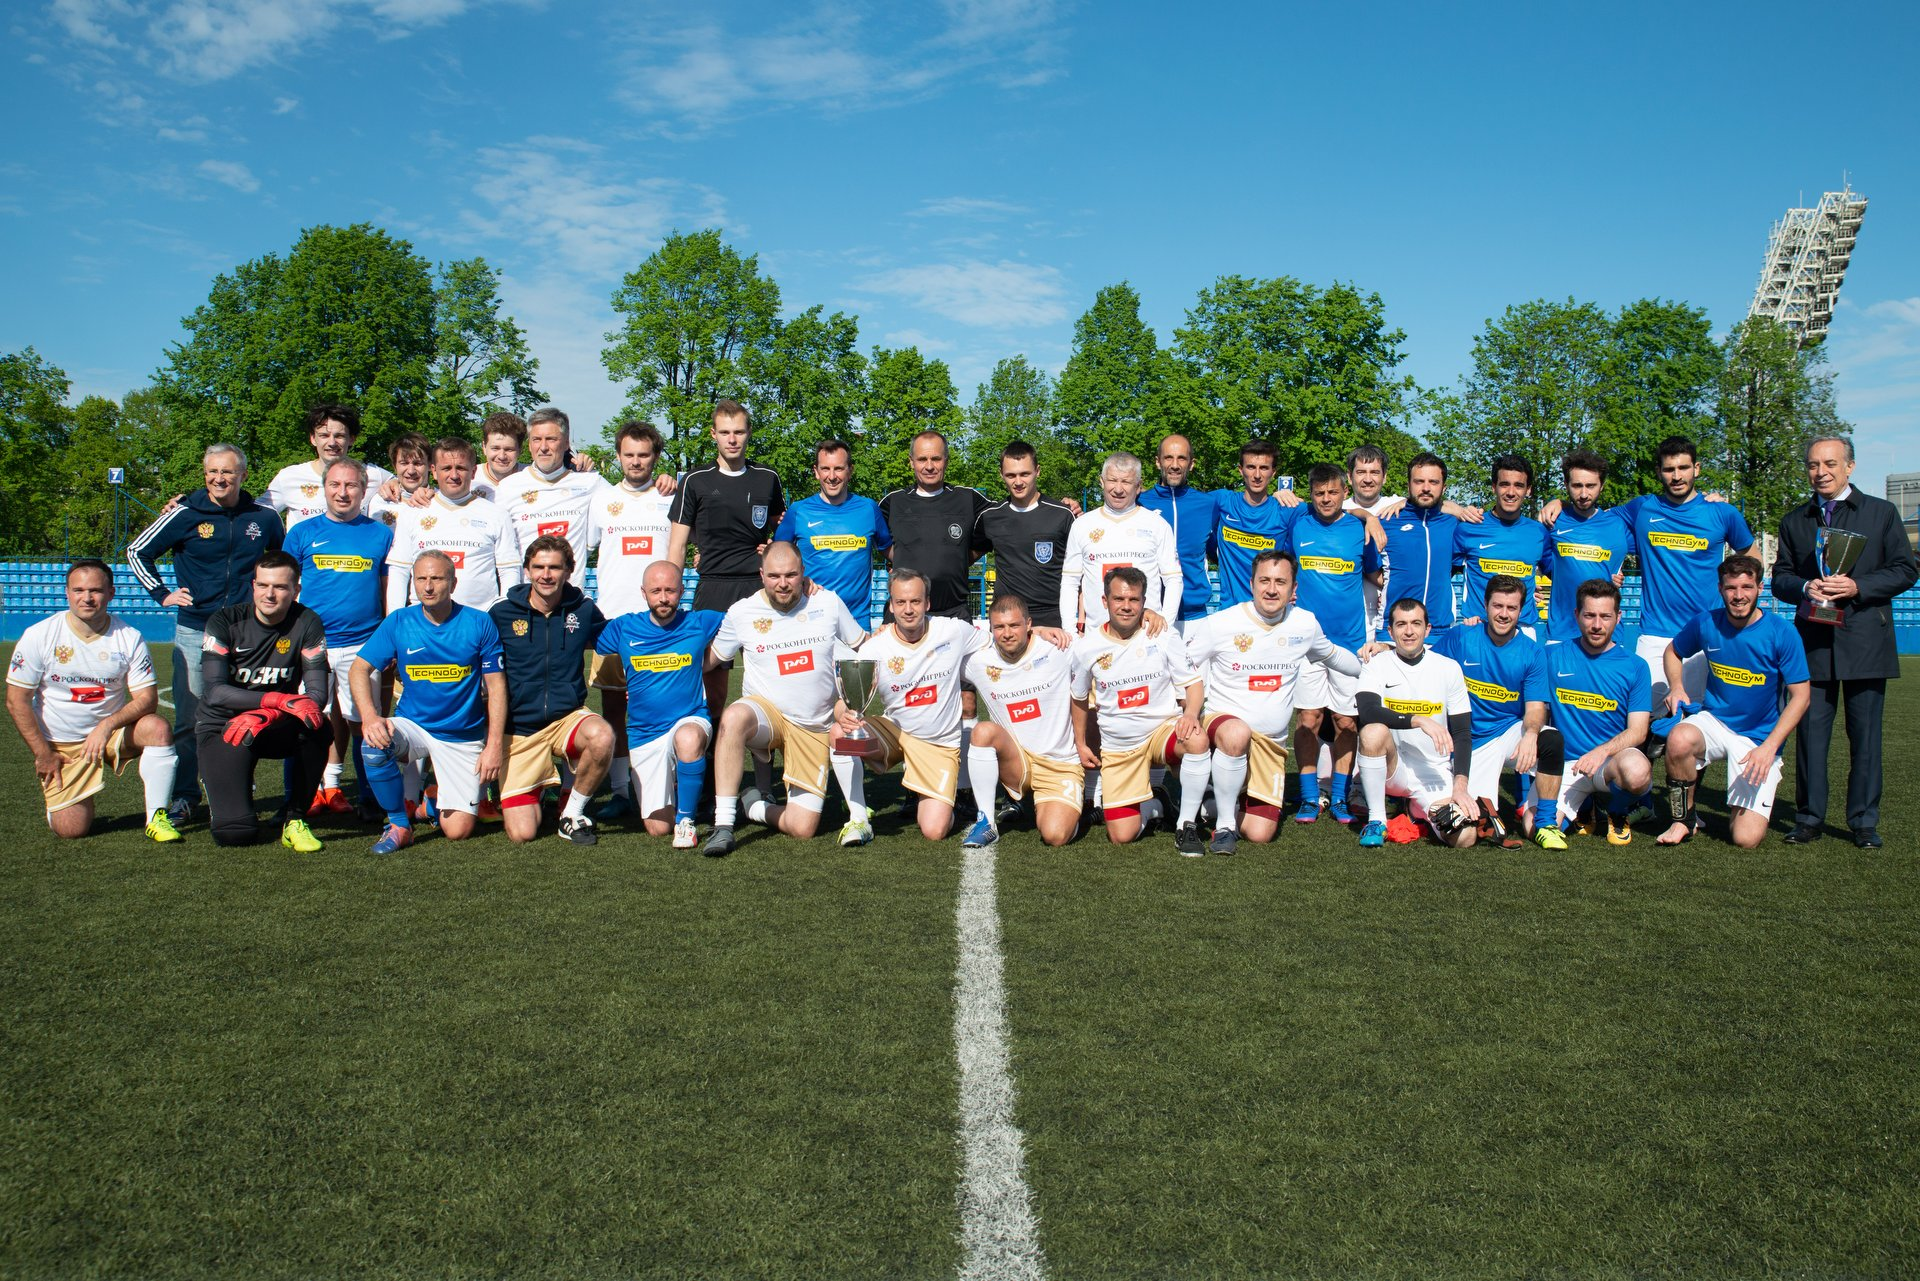 Russia – Italy Friendly Football Match Opens SPIEF 2018 Sporting Programme